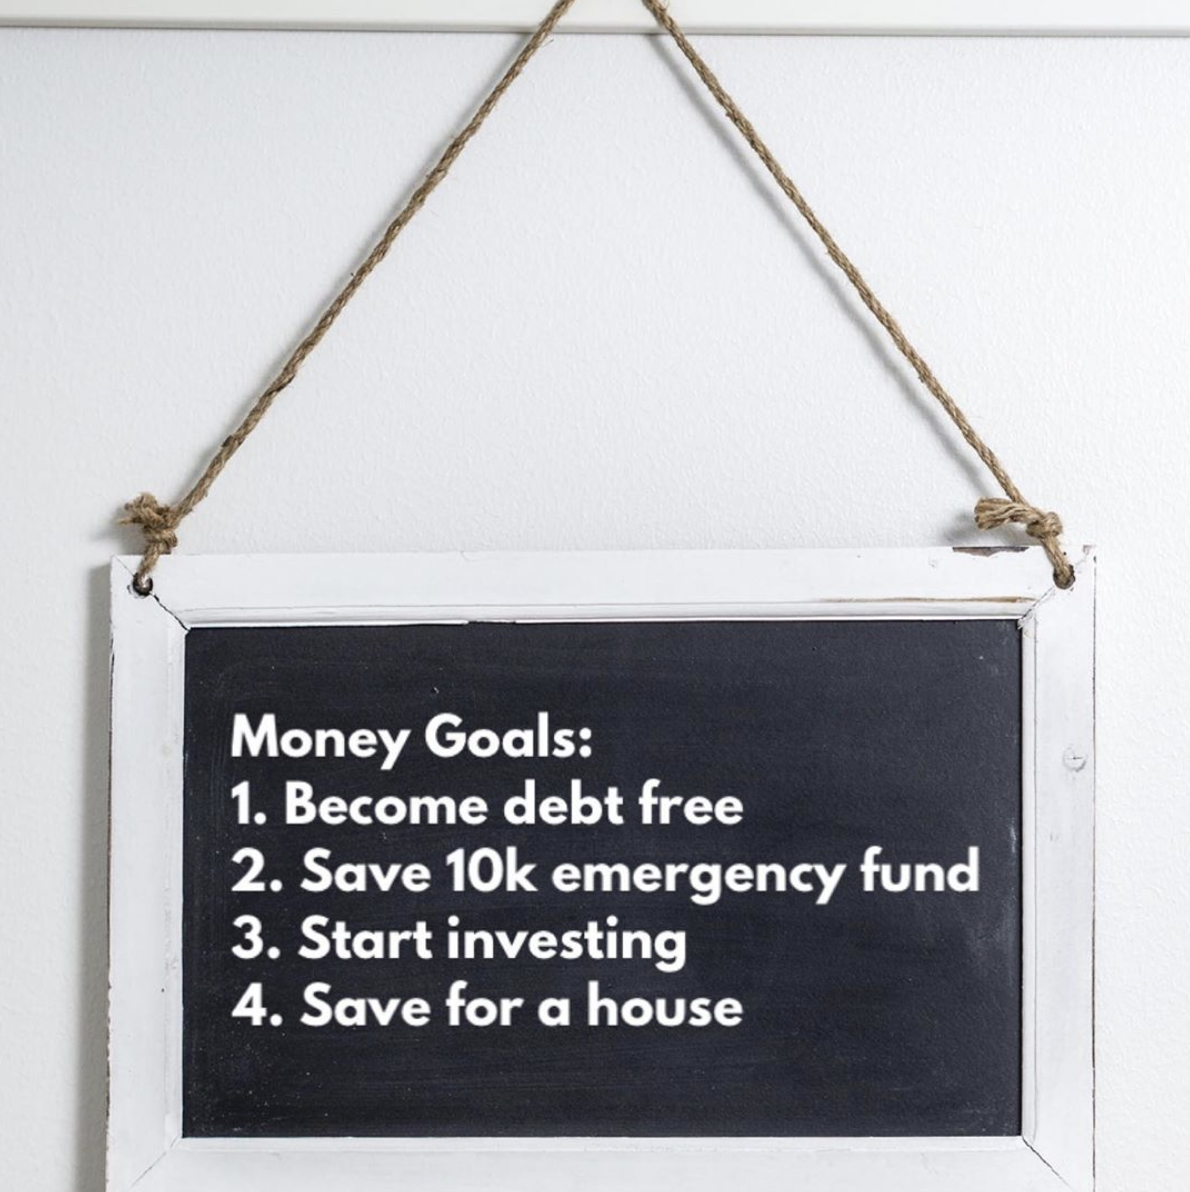 A chalkboard hung on a wall with money goals like become debt free, saving for an emergency fund, saving for a house written on it.